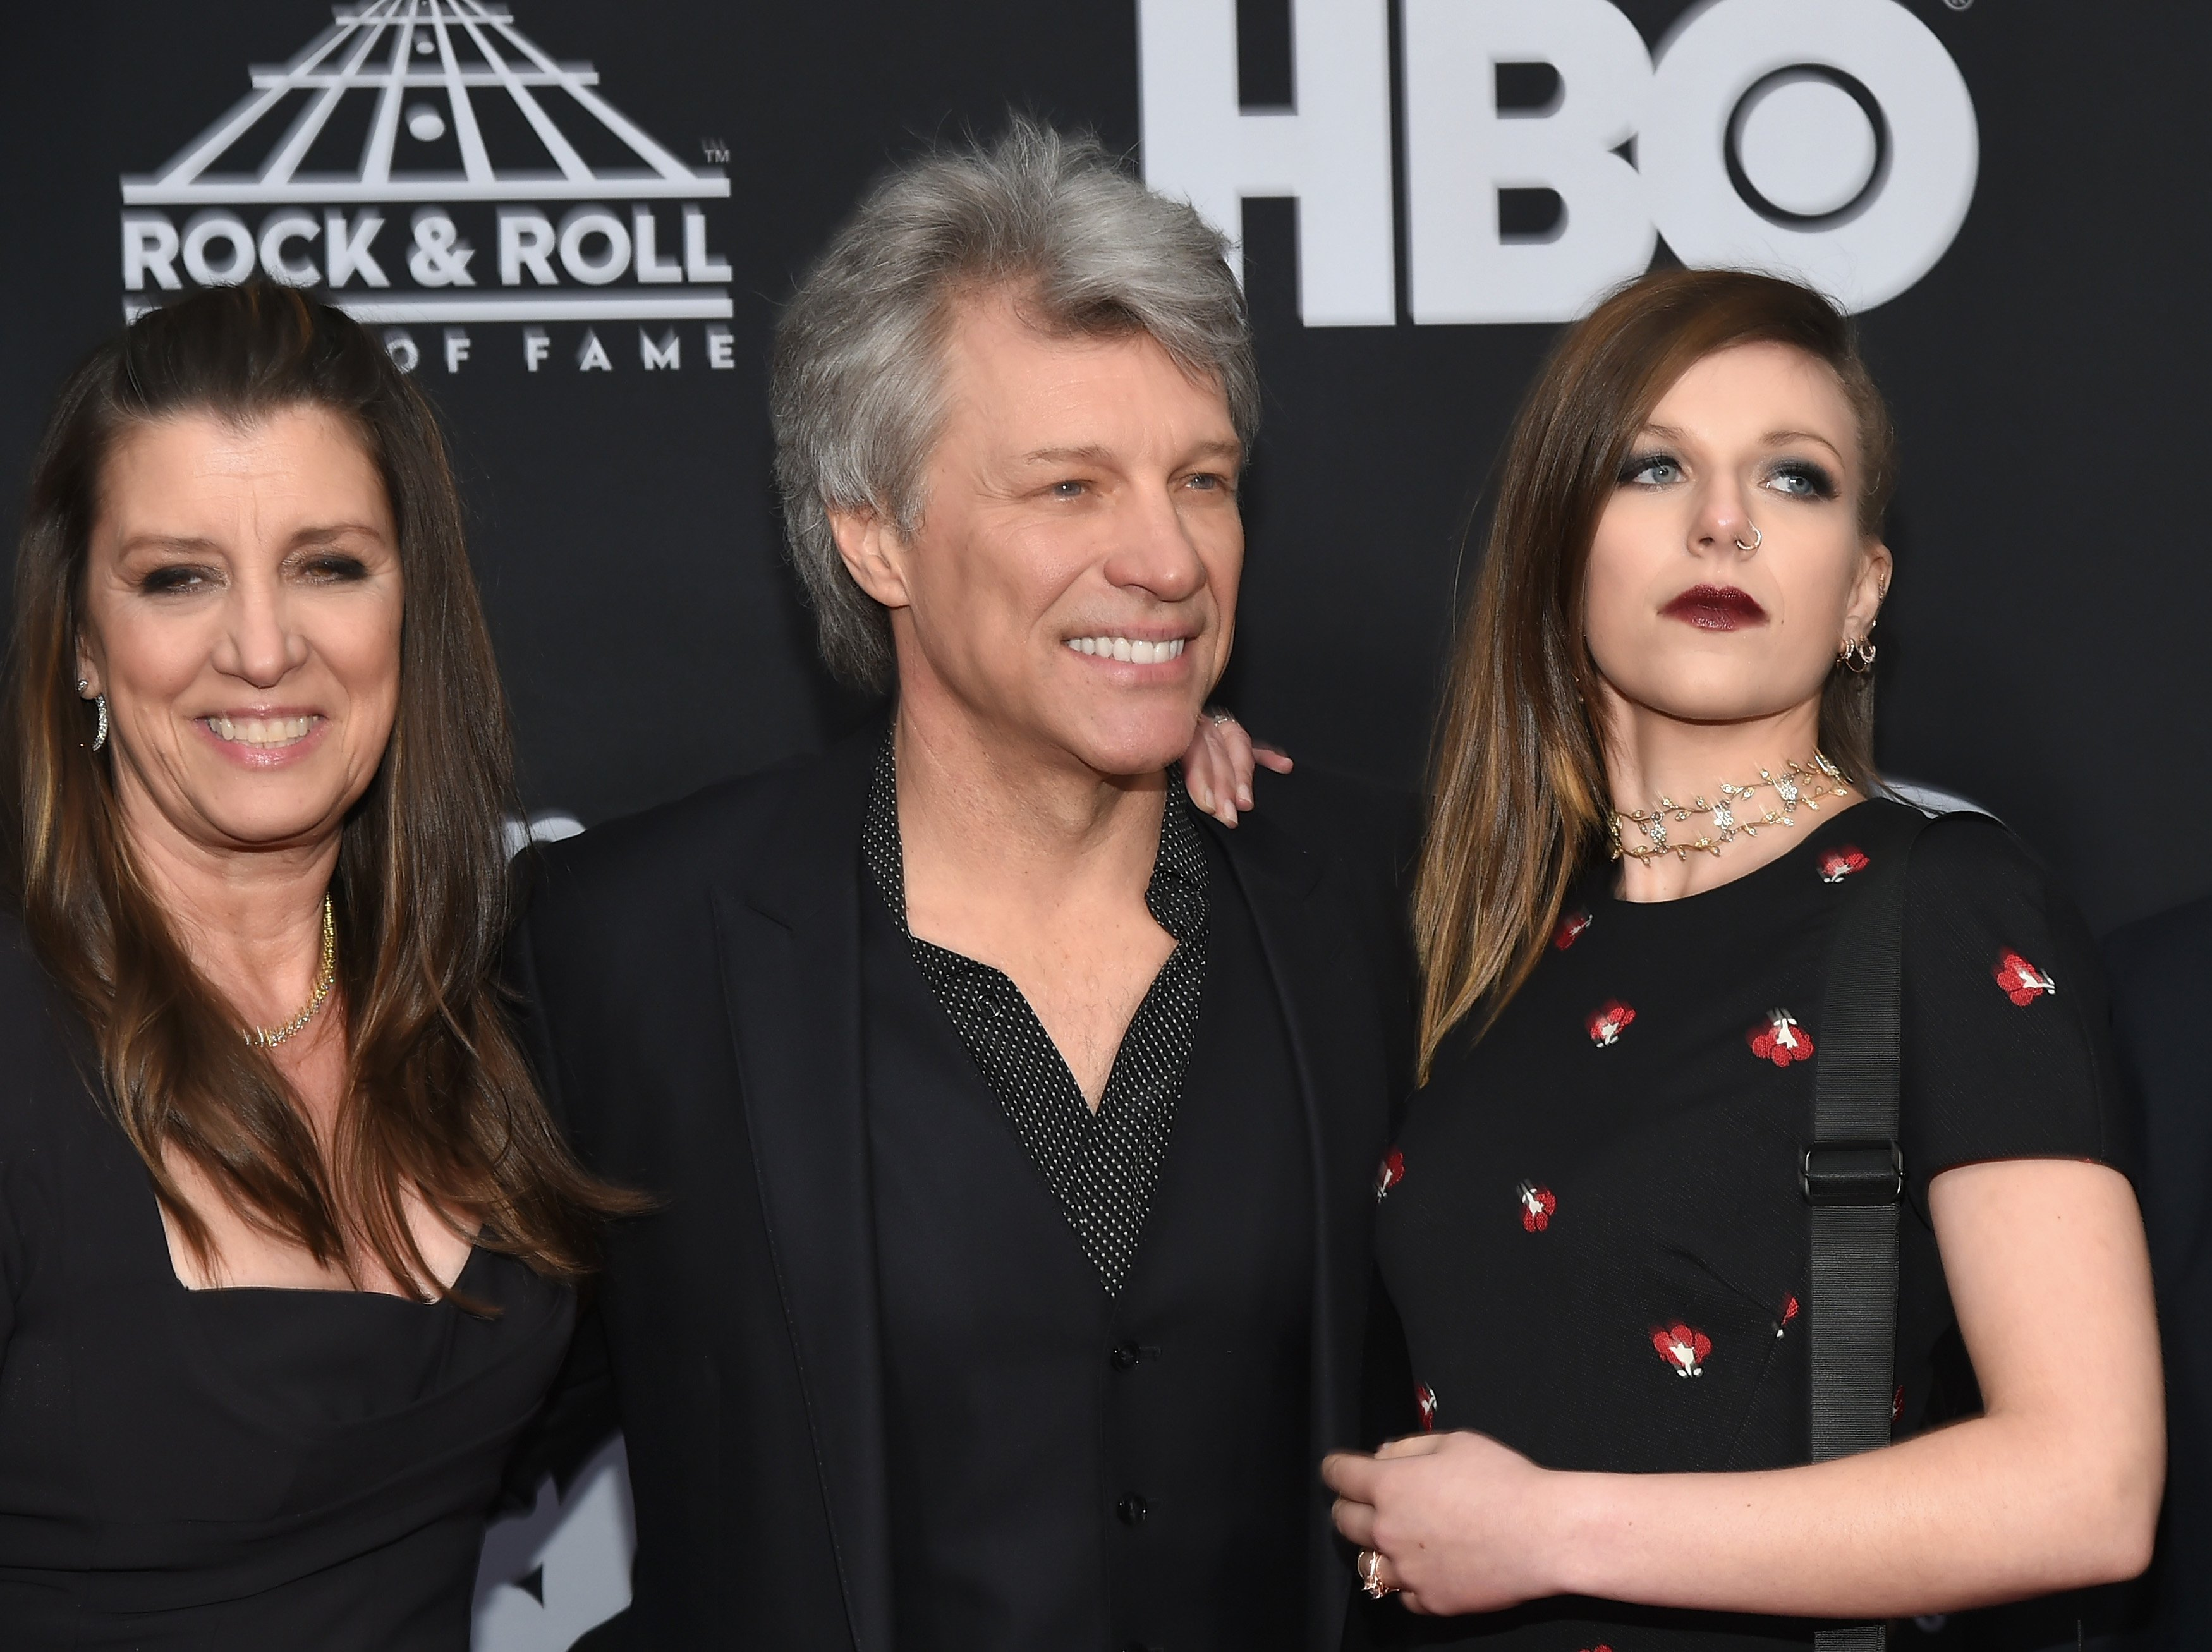 Dorothea Hurley, Jon Bon Jovi and Stephanie Rose Bongiovi at the 33rd Annual Rock & Roll Hall of Fame Induction Ceremony. | Source: Getty Images